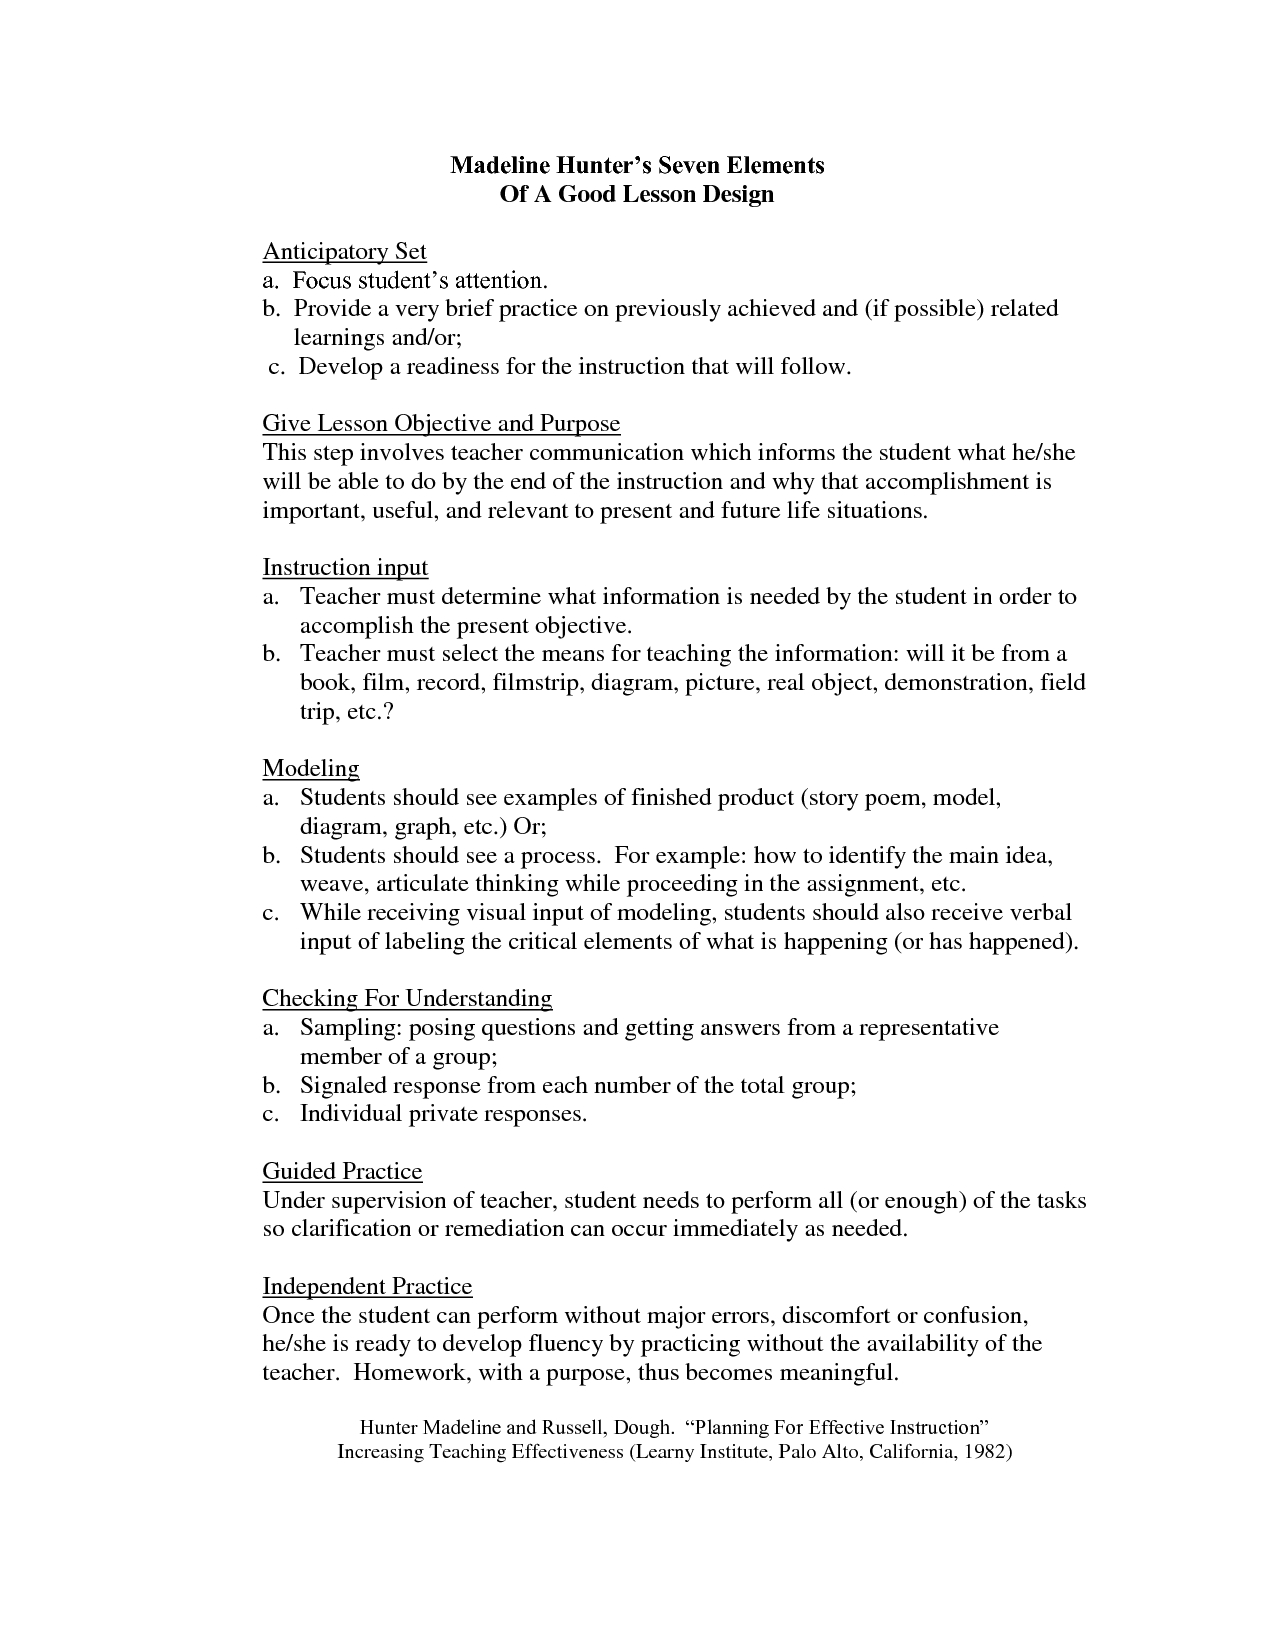 Madeline Hunter Lesson Plan Format Template  Google Search  Th With Madeline Hunter Lesson Plan Blank Template